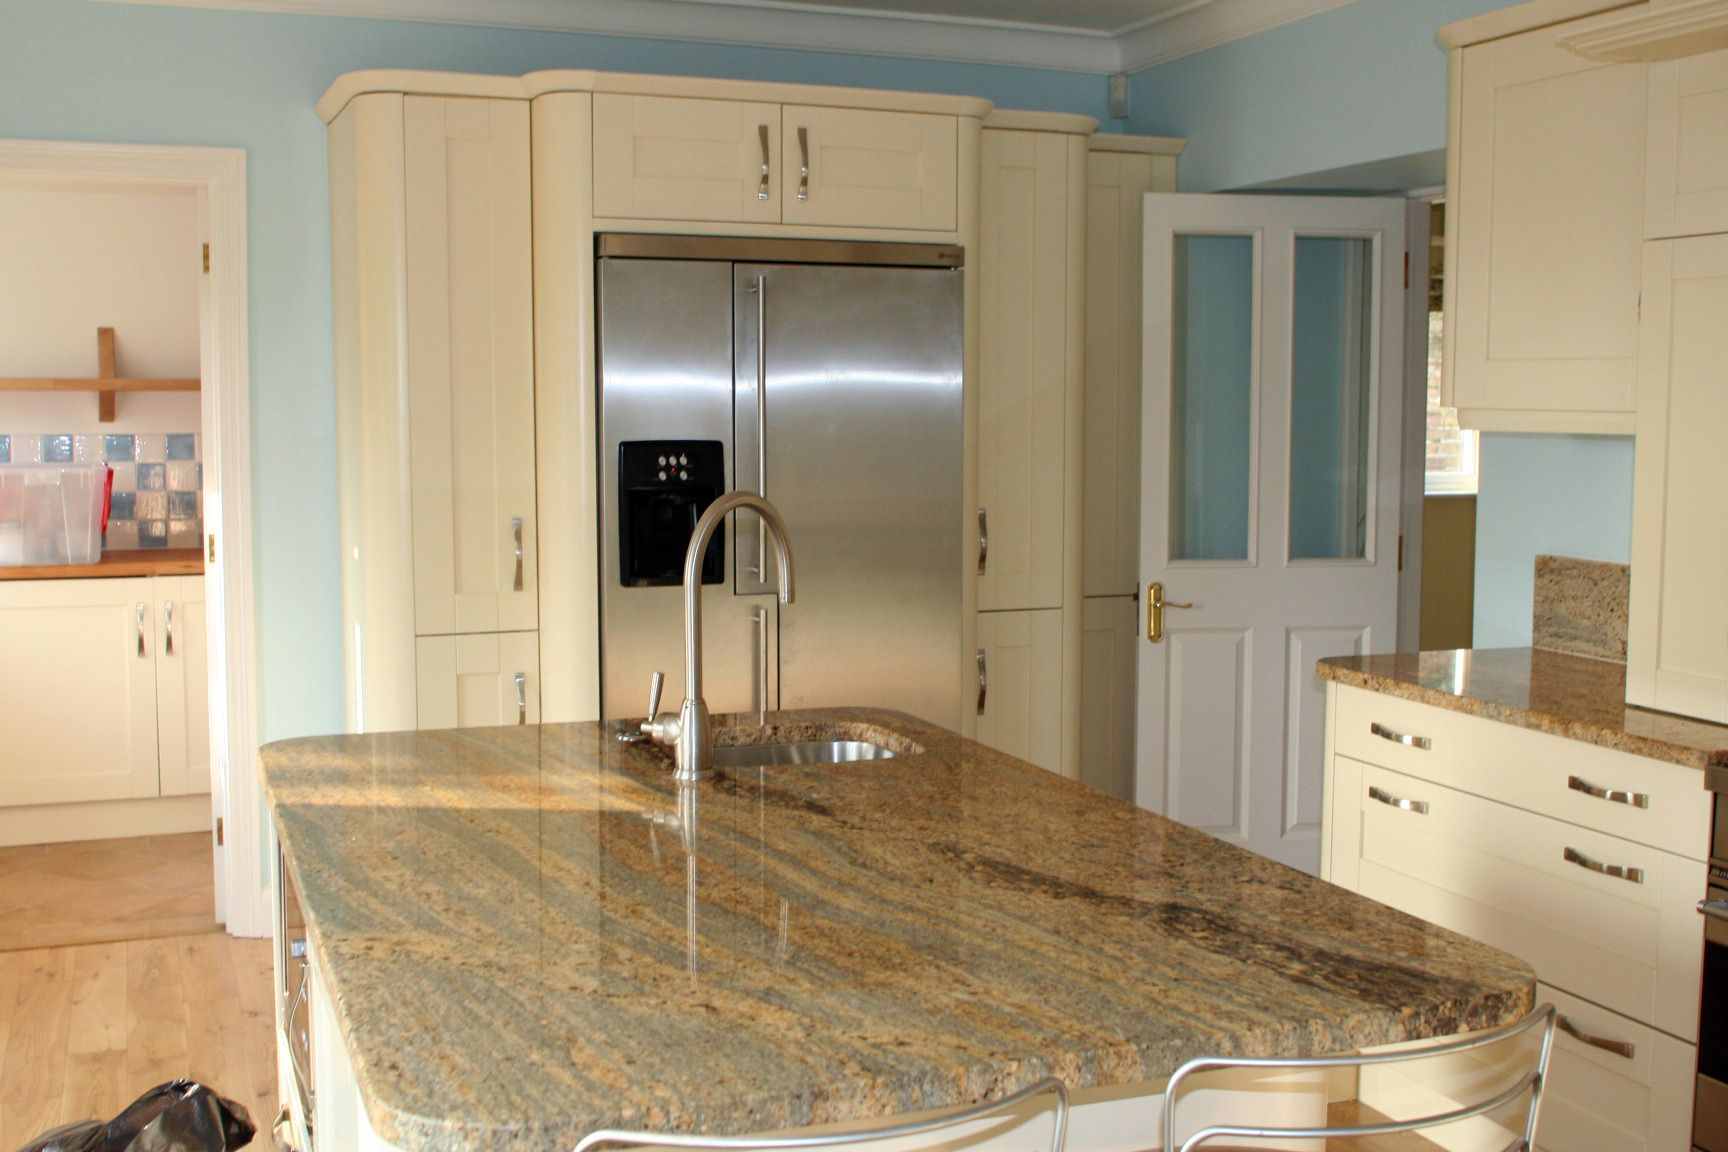 Kashmir Gold Granite Countertops Kashmir Gold Granite Countertops Kashmir Gold Granite